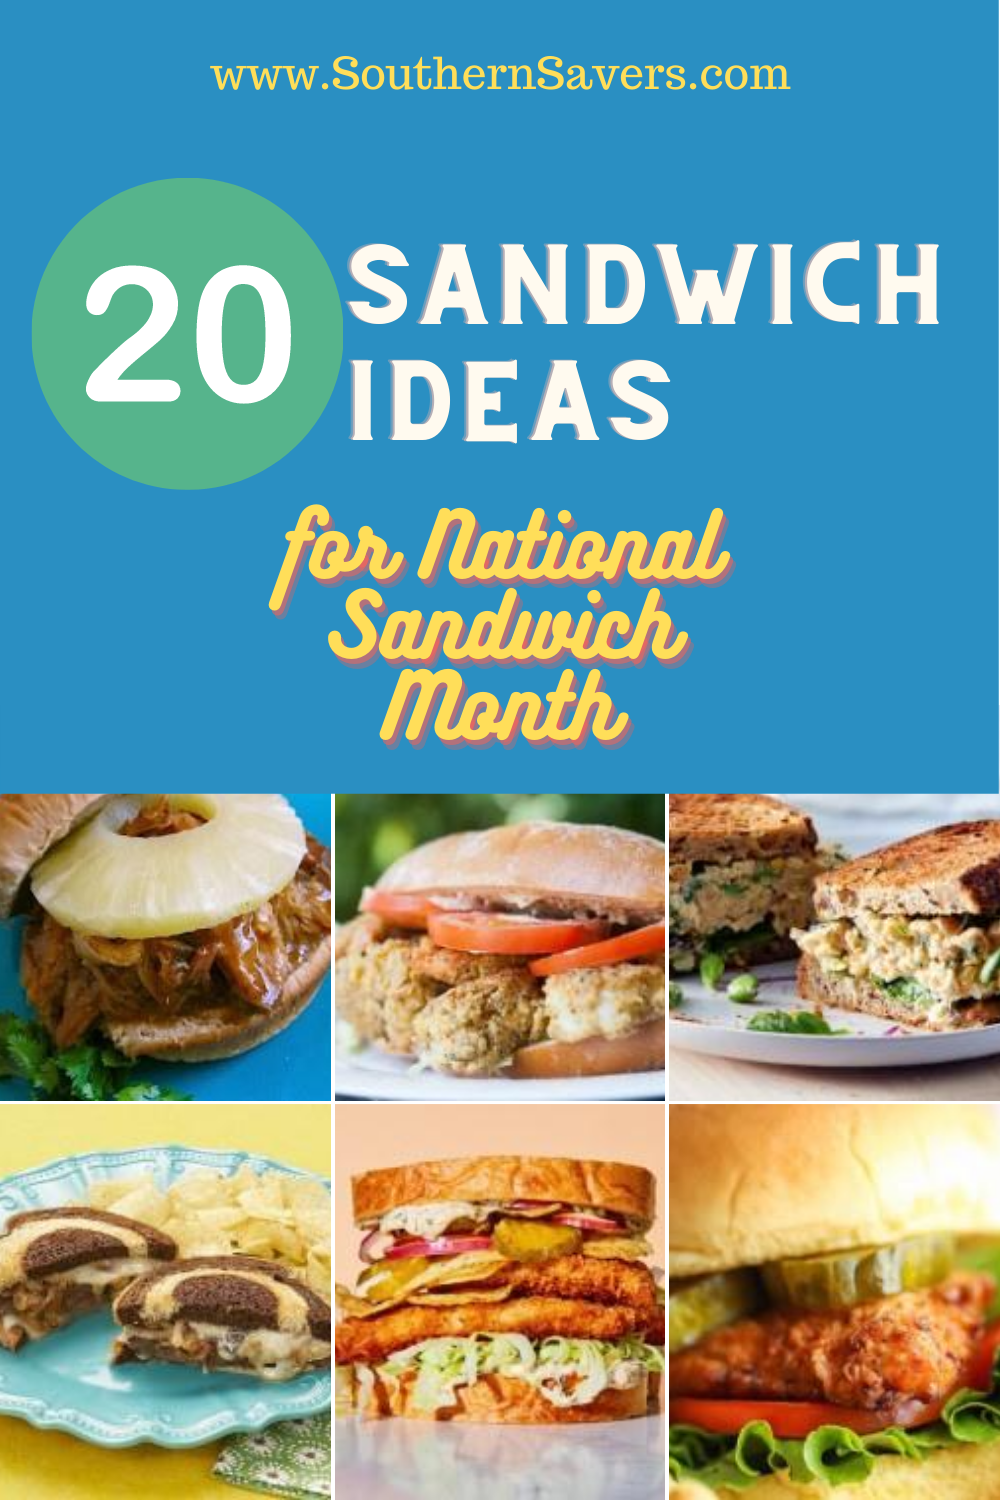 August is National Sandwich Month, so here are 20 sandwich ideas so you can eat a different sandwich evey day for the rest of the month!